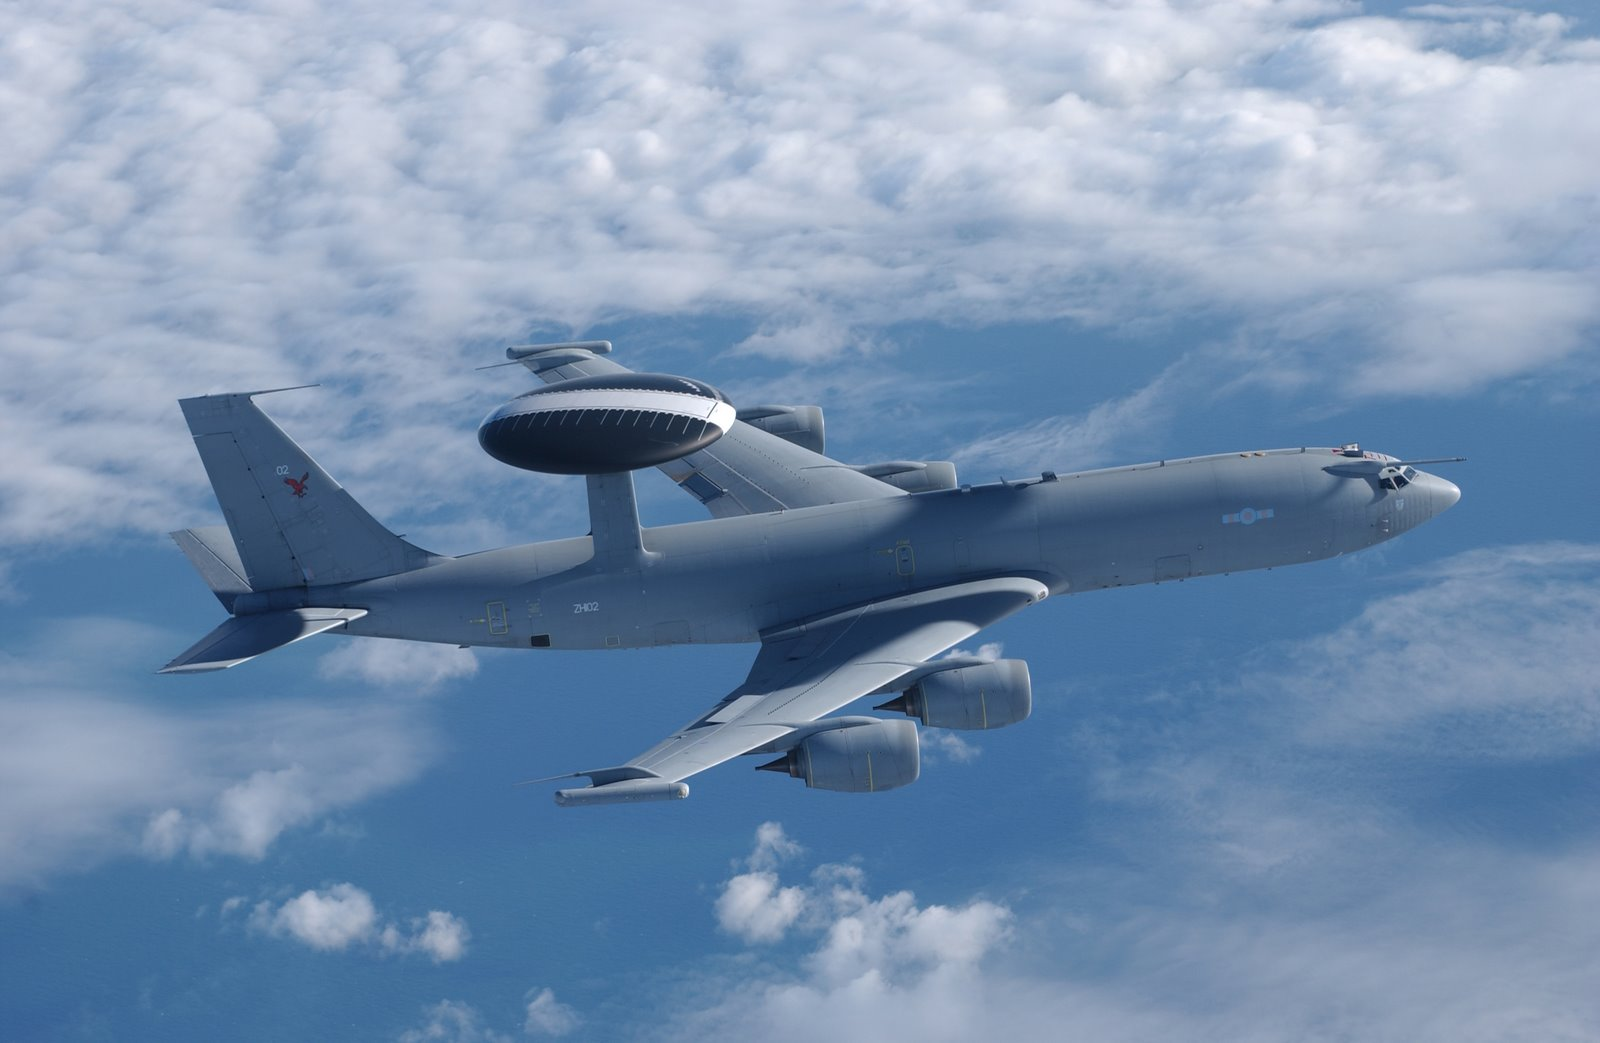 Arinc Data For The Uk Royal Air Force